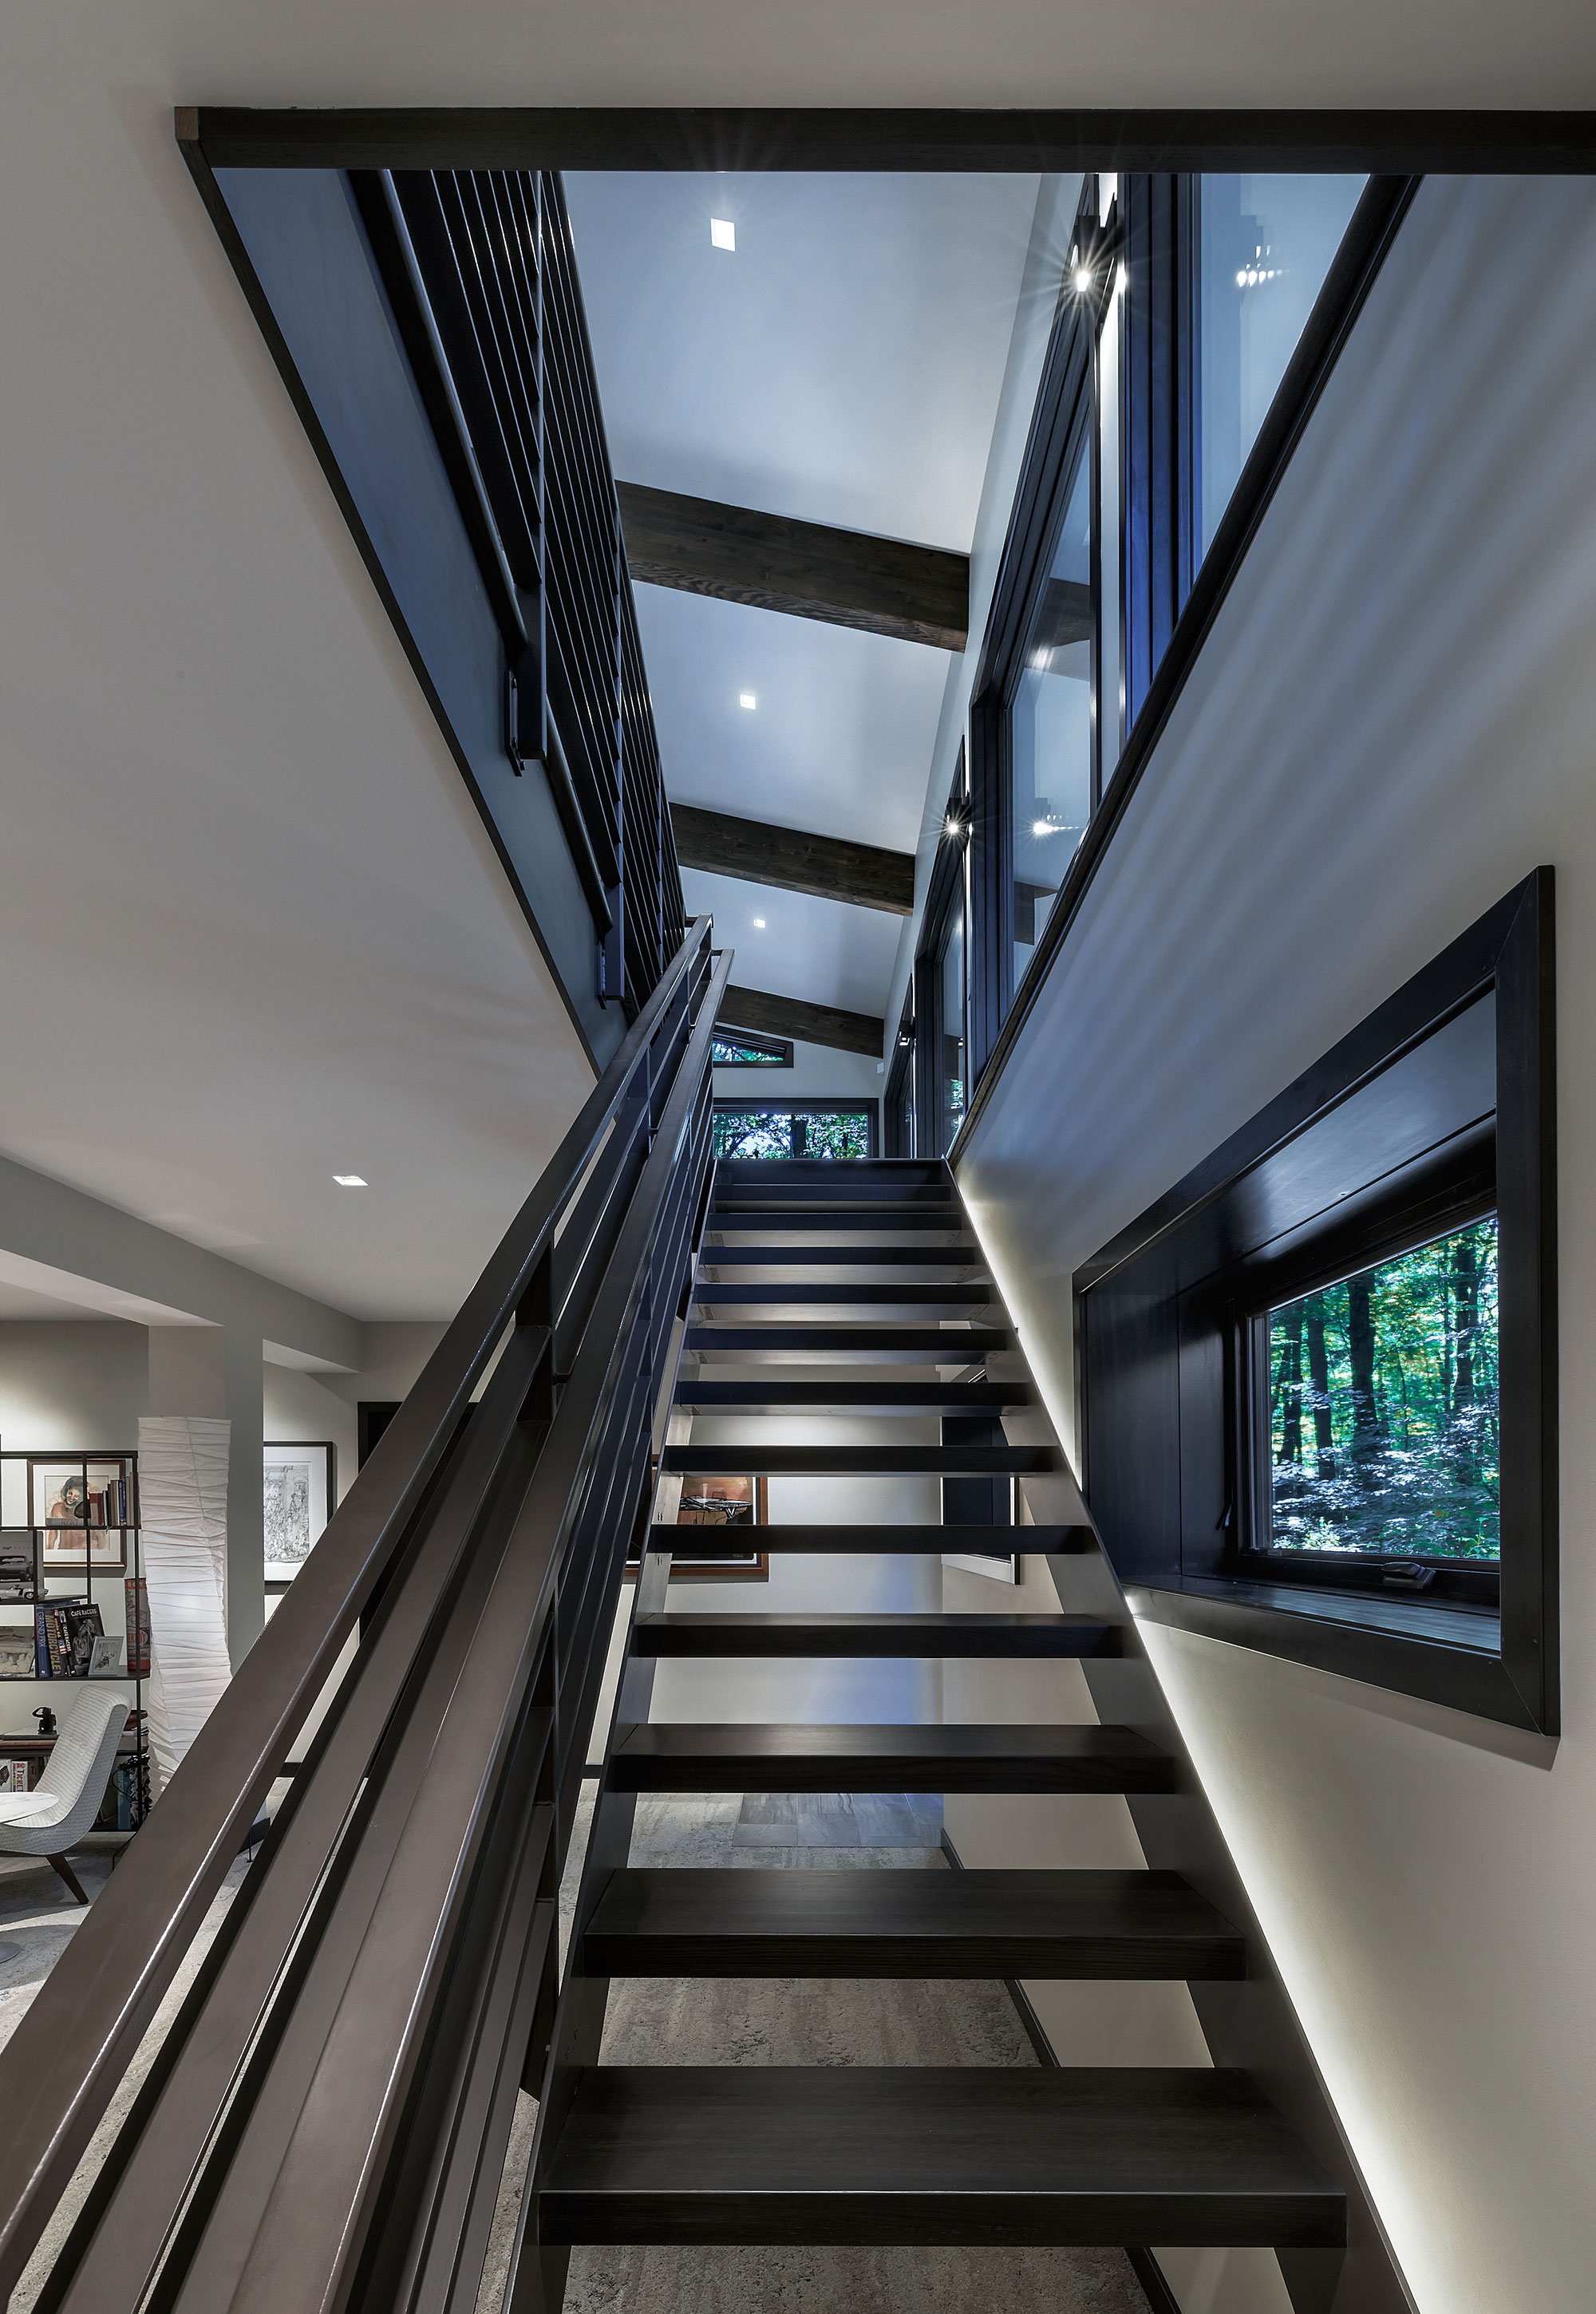 Staircase symmetric with a window in the roof